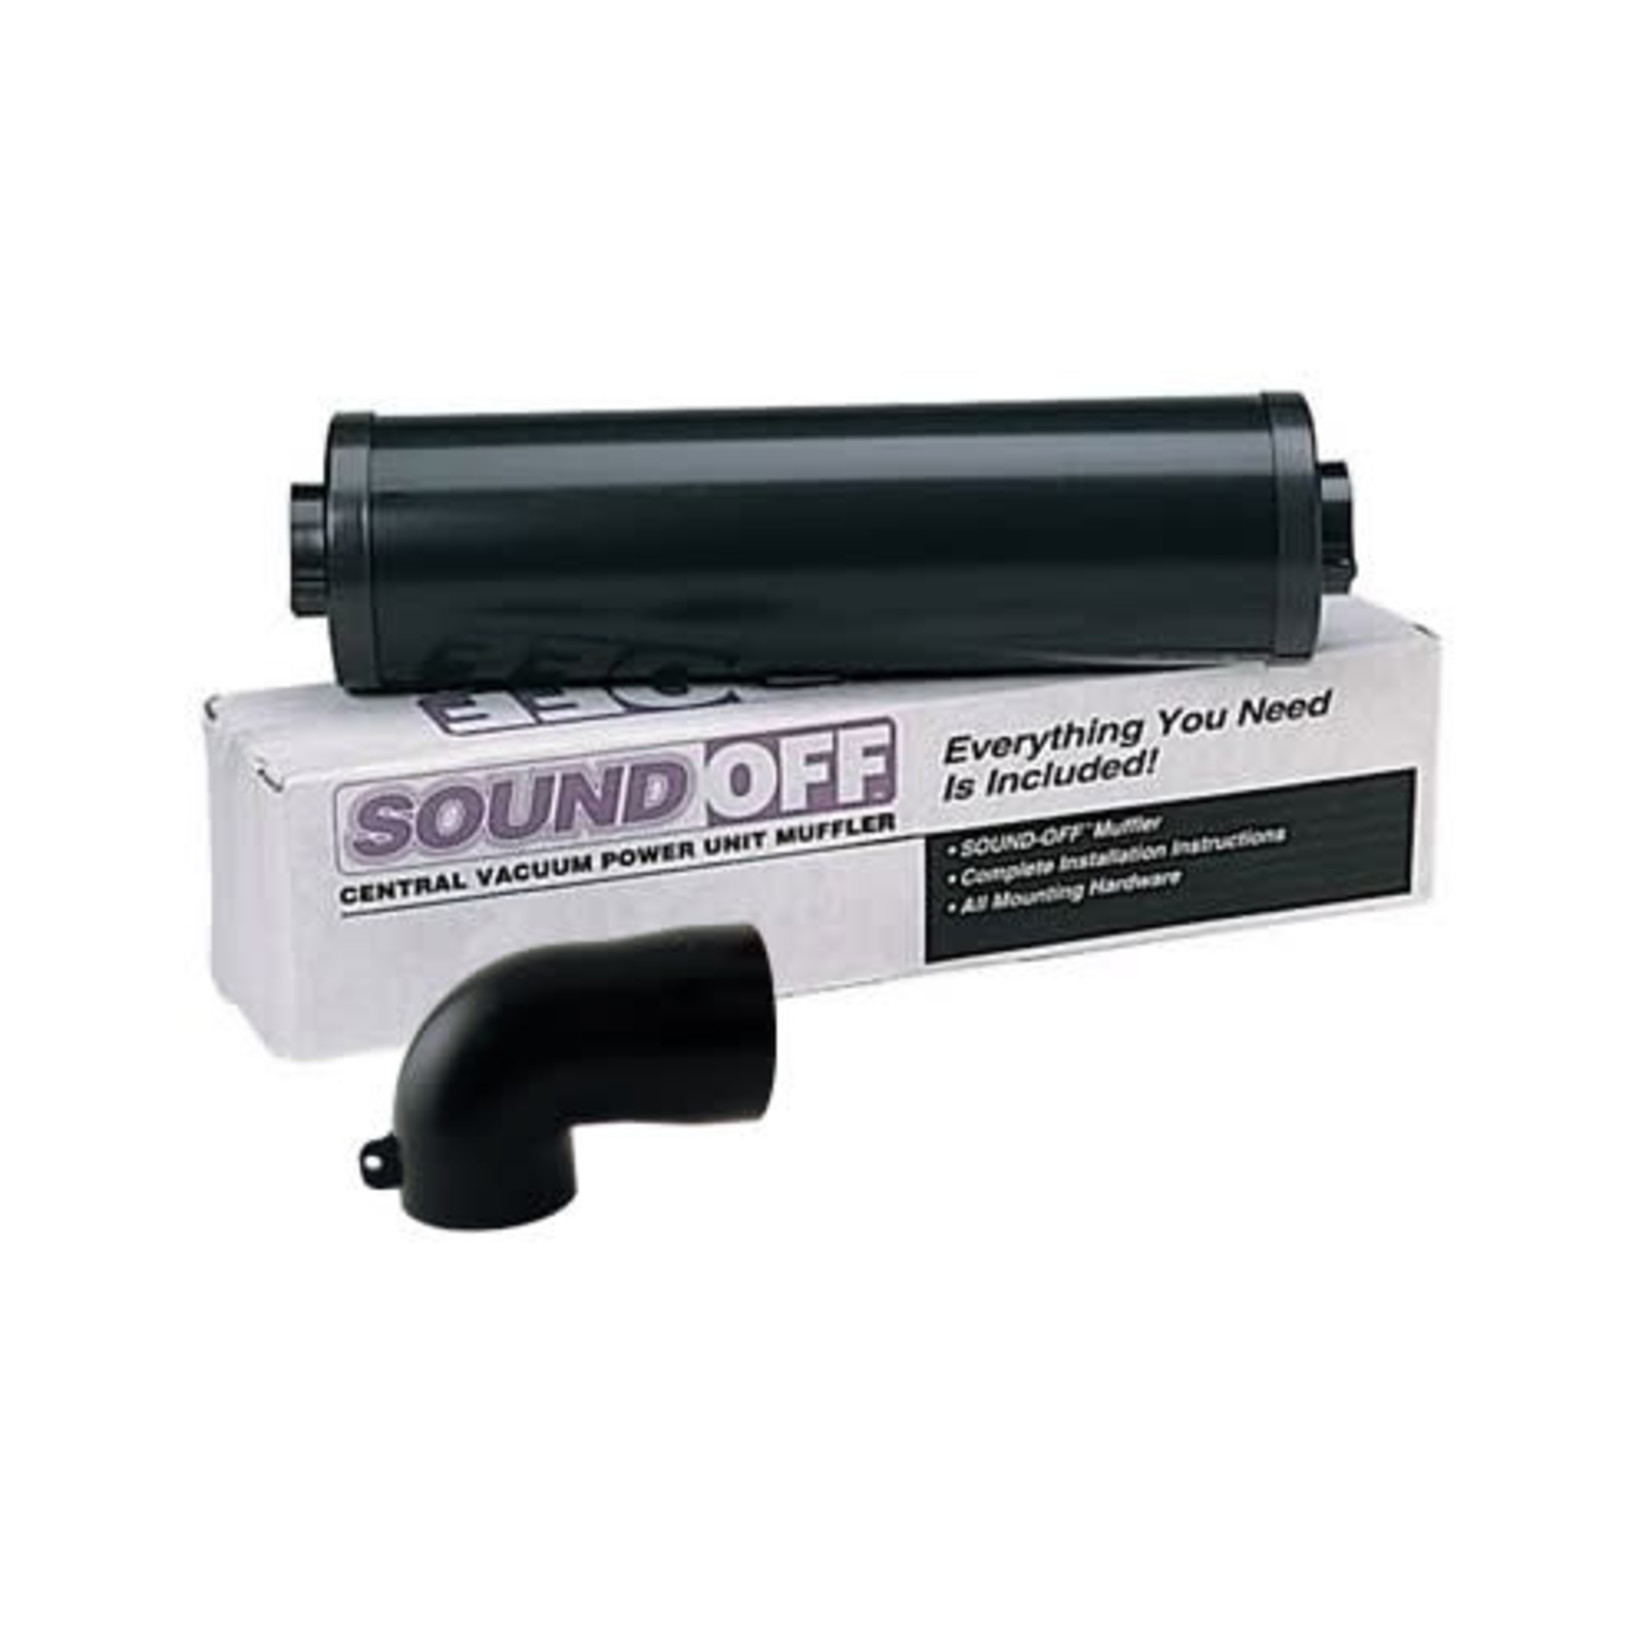 BEAM Beam & Eureka Sound Off Muffler - Black